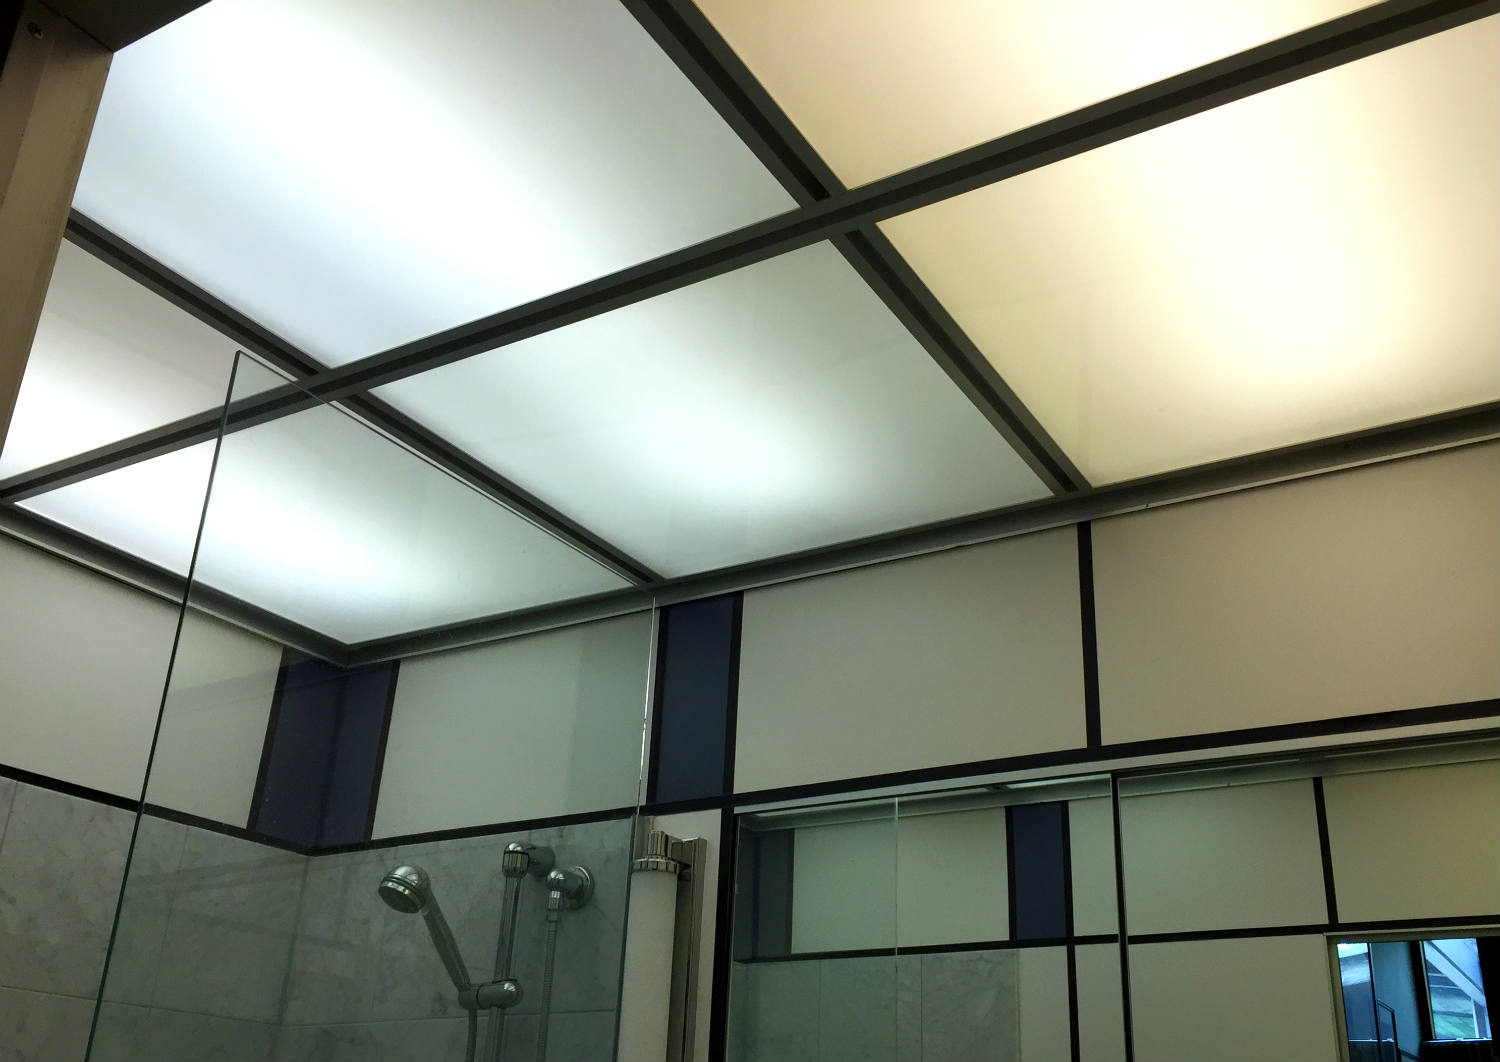 Bathroom Ceiling in Alcoa Care Free Home in Rochester, New York